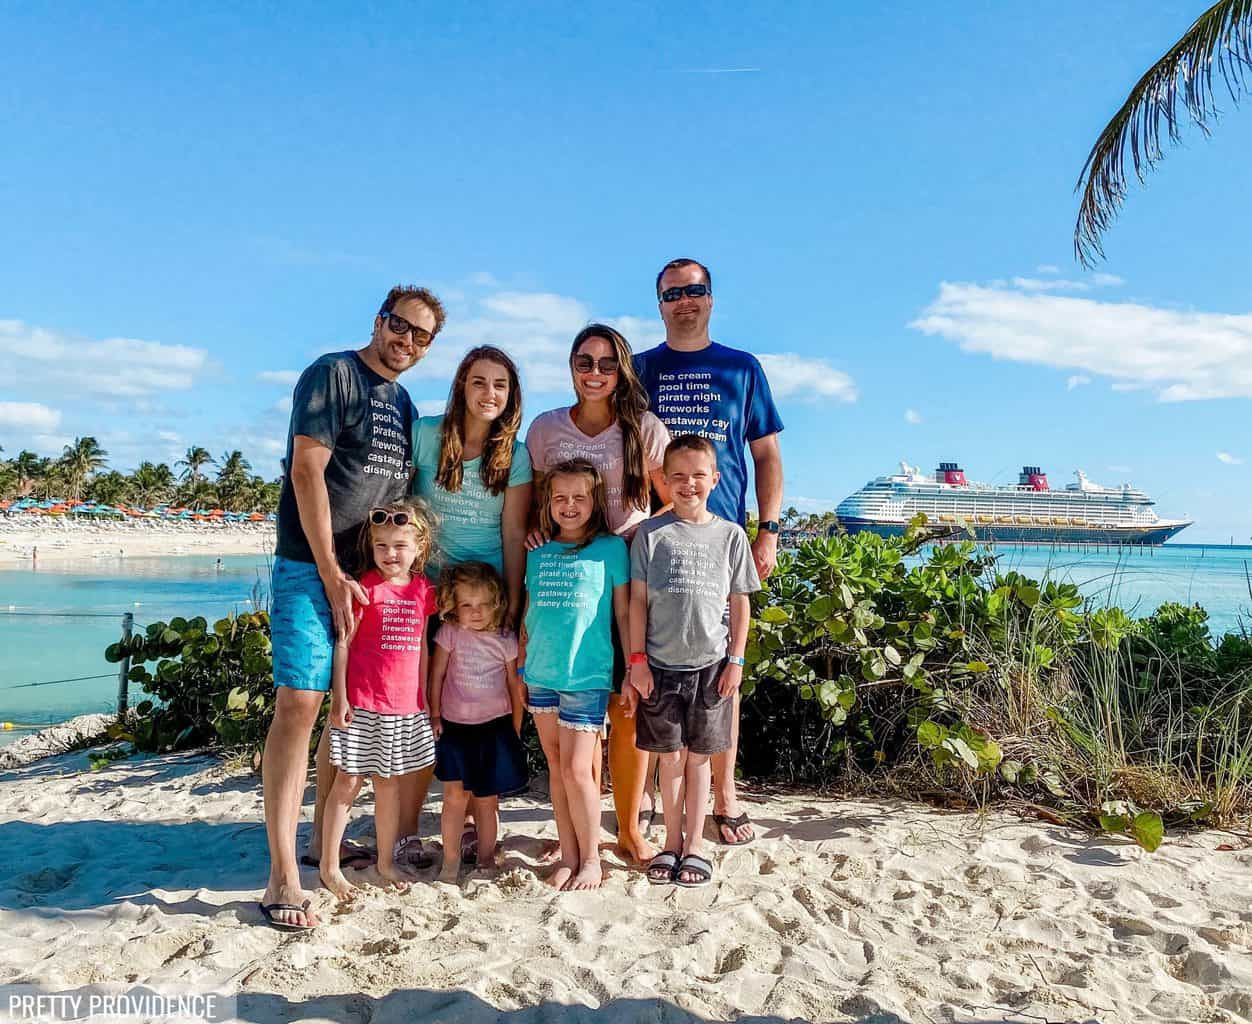 Family wearing matching disney cruise family shirts on Castaway Cay with Disney cruise ship in the background.